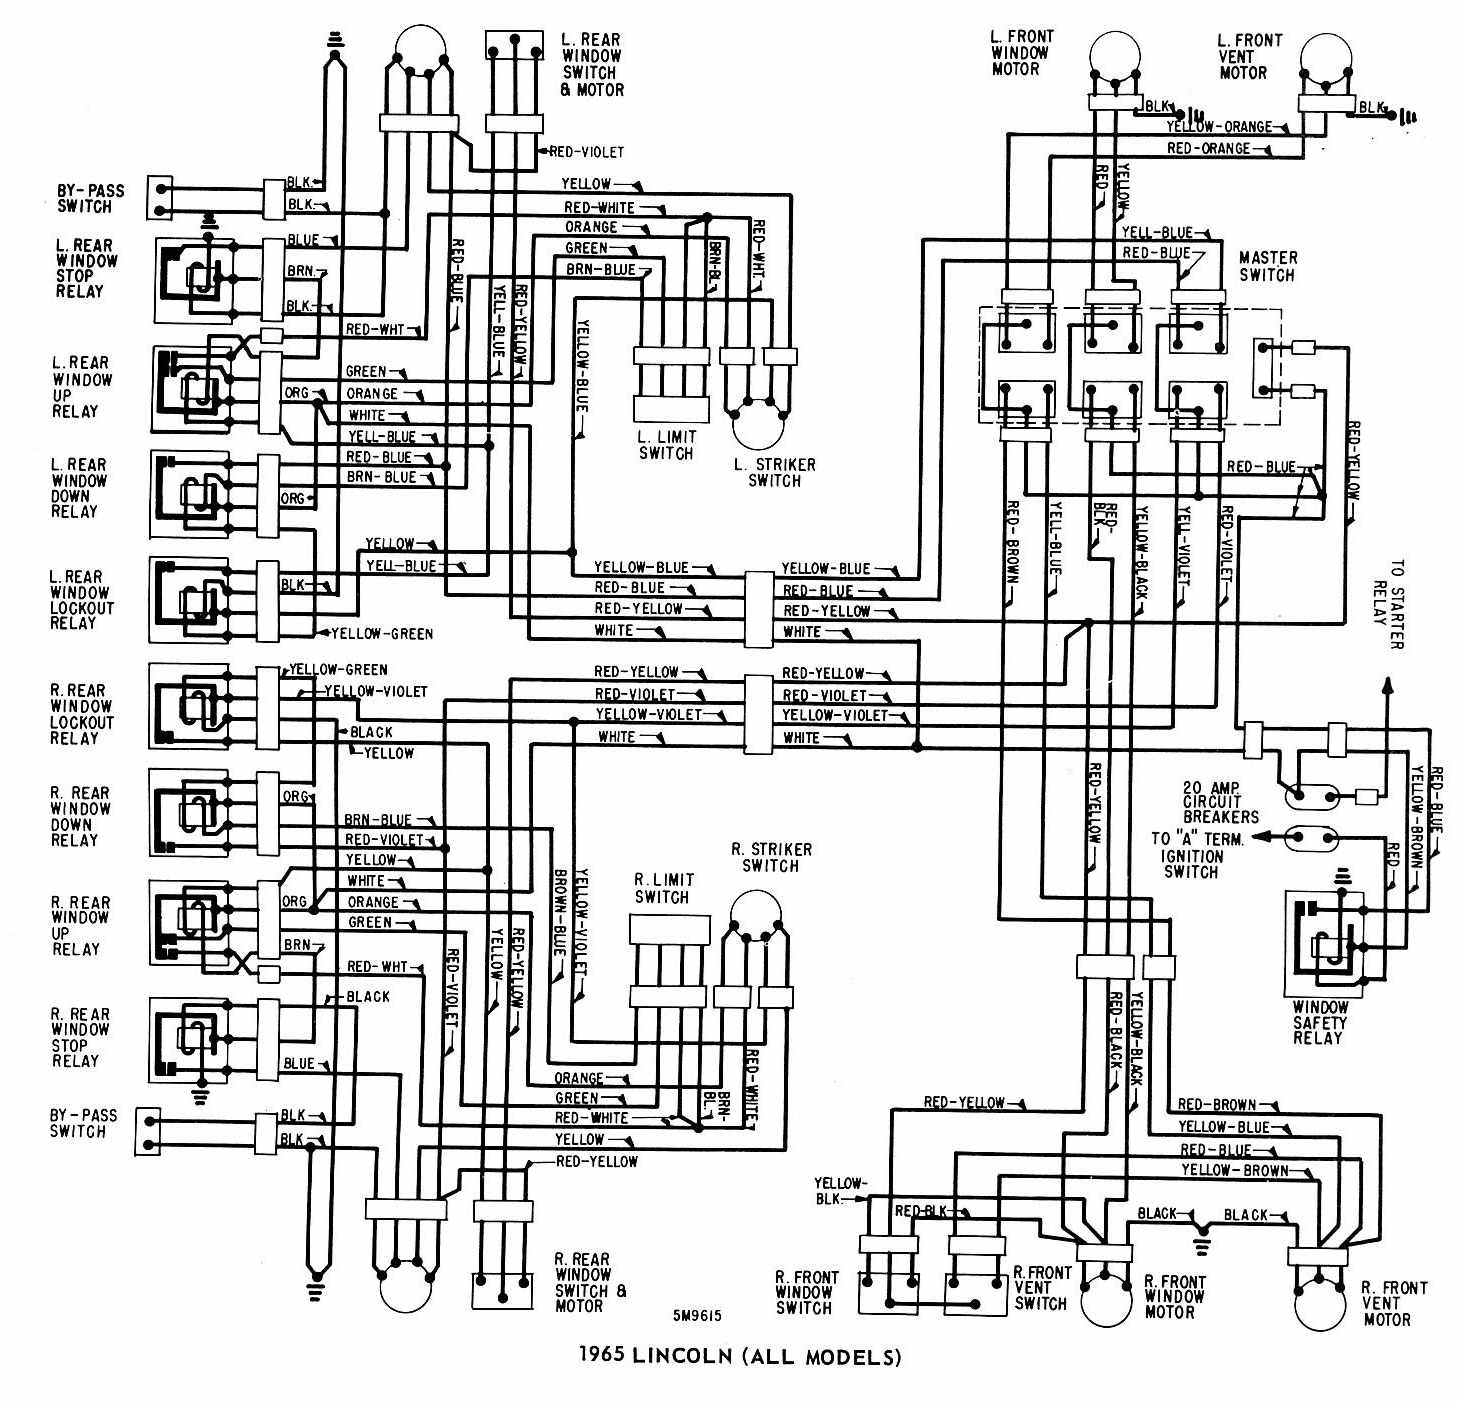 Lincoln+(All+Models)+1965+Windows+Wiring+Diagram lincoln wiring diagrams 1949 lincoln wiring diagram \u2022 free wiring lincoln foot pedal wiring diagram at bakdesigns.co